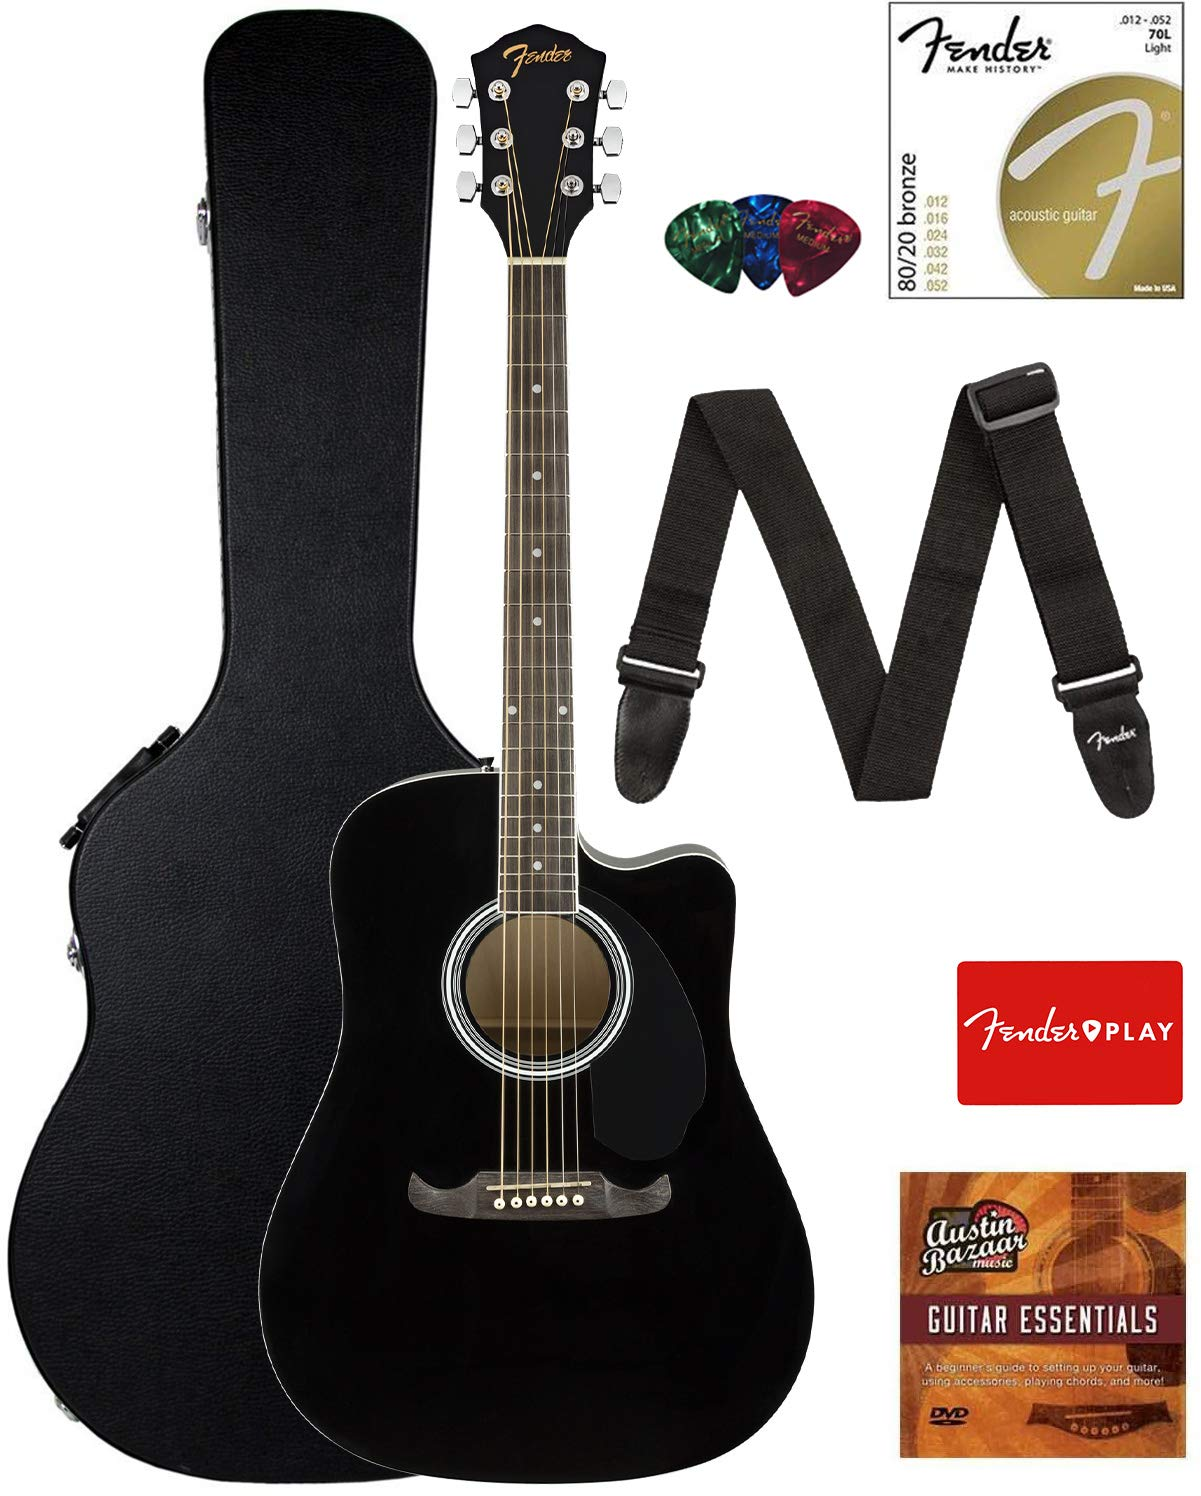 Contents of the Black Fender FA-125CE Dreadnought Cutaway AEG Bundle with Hard Case